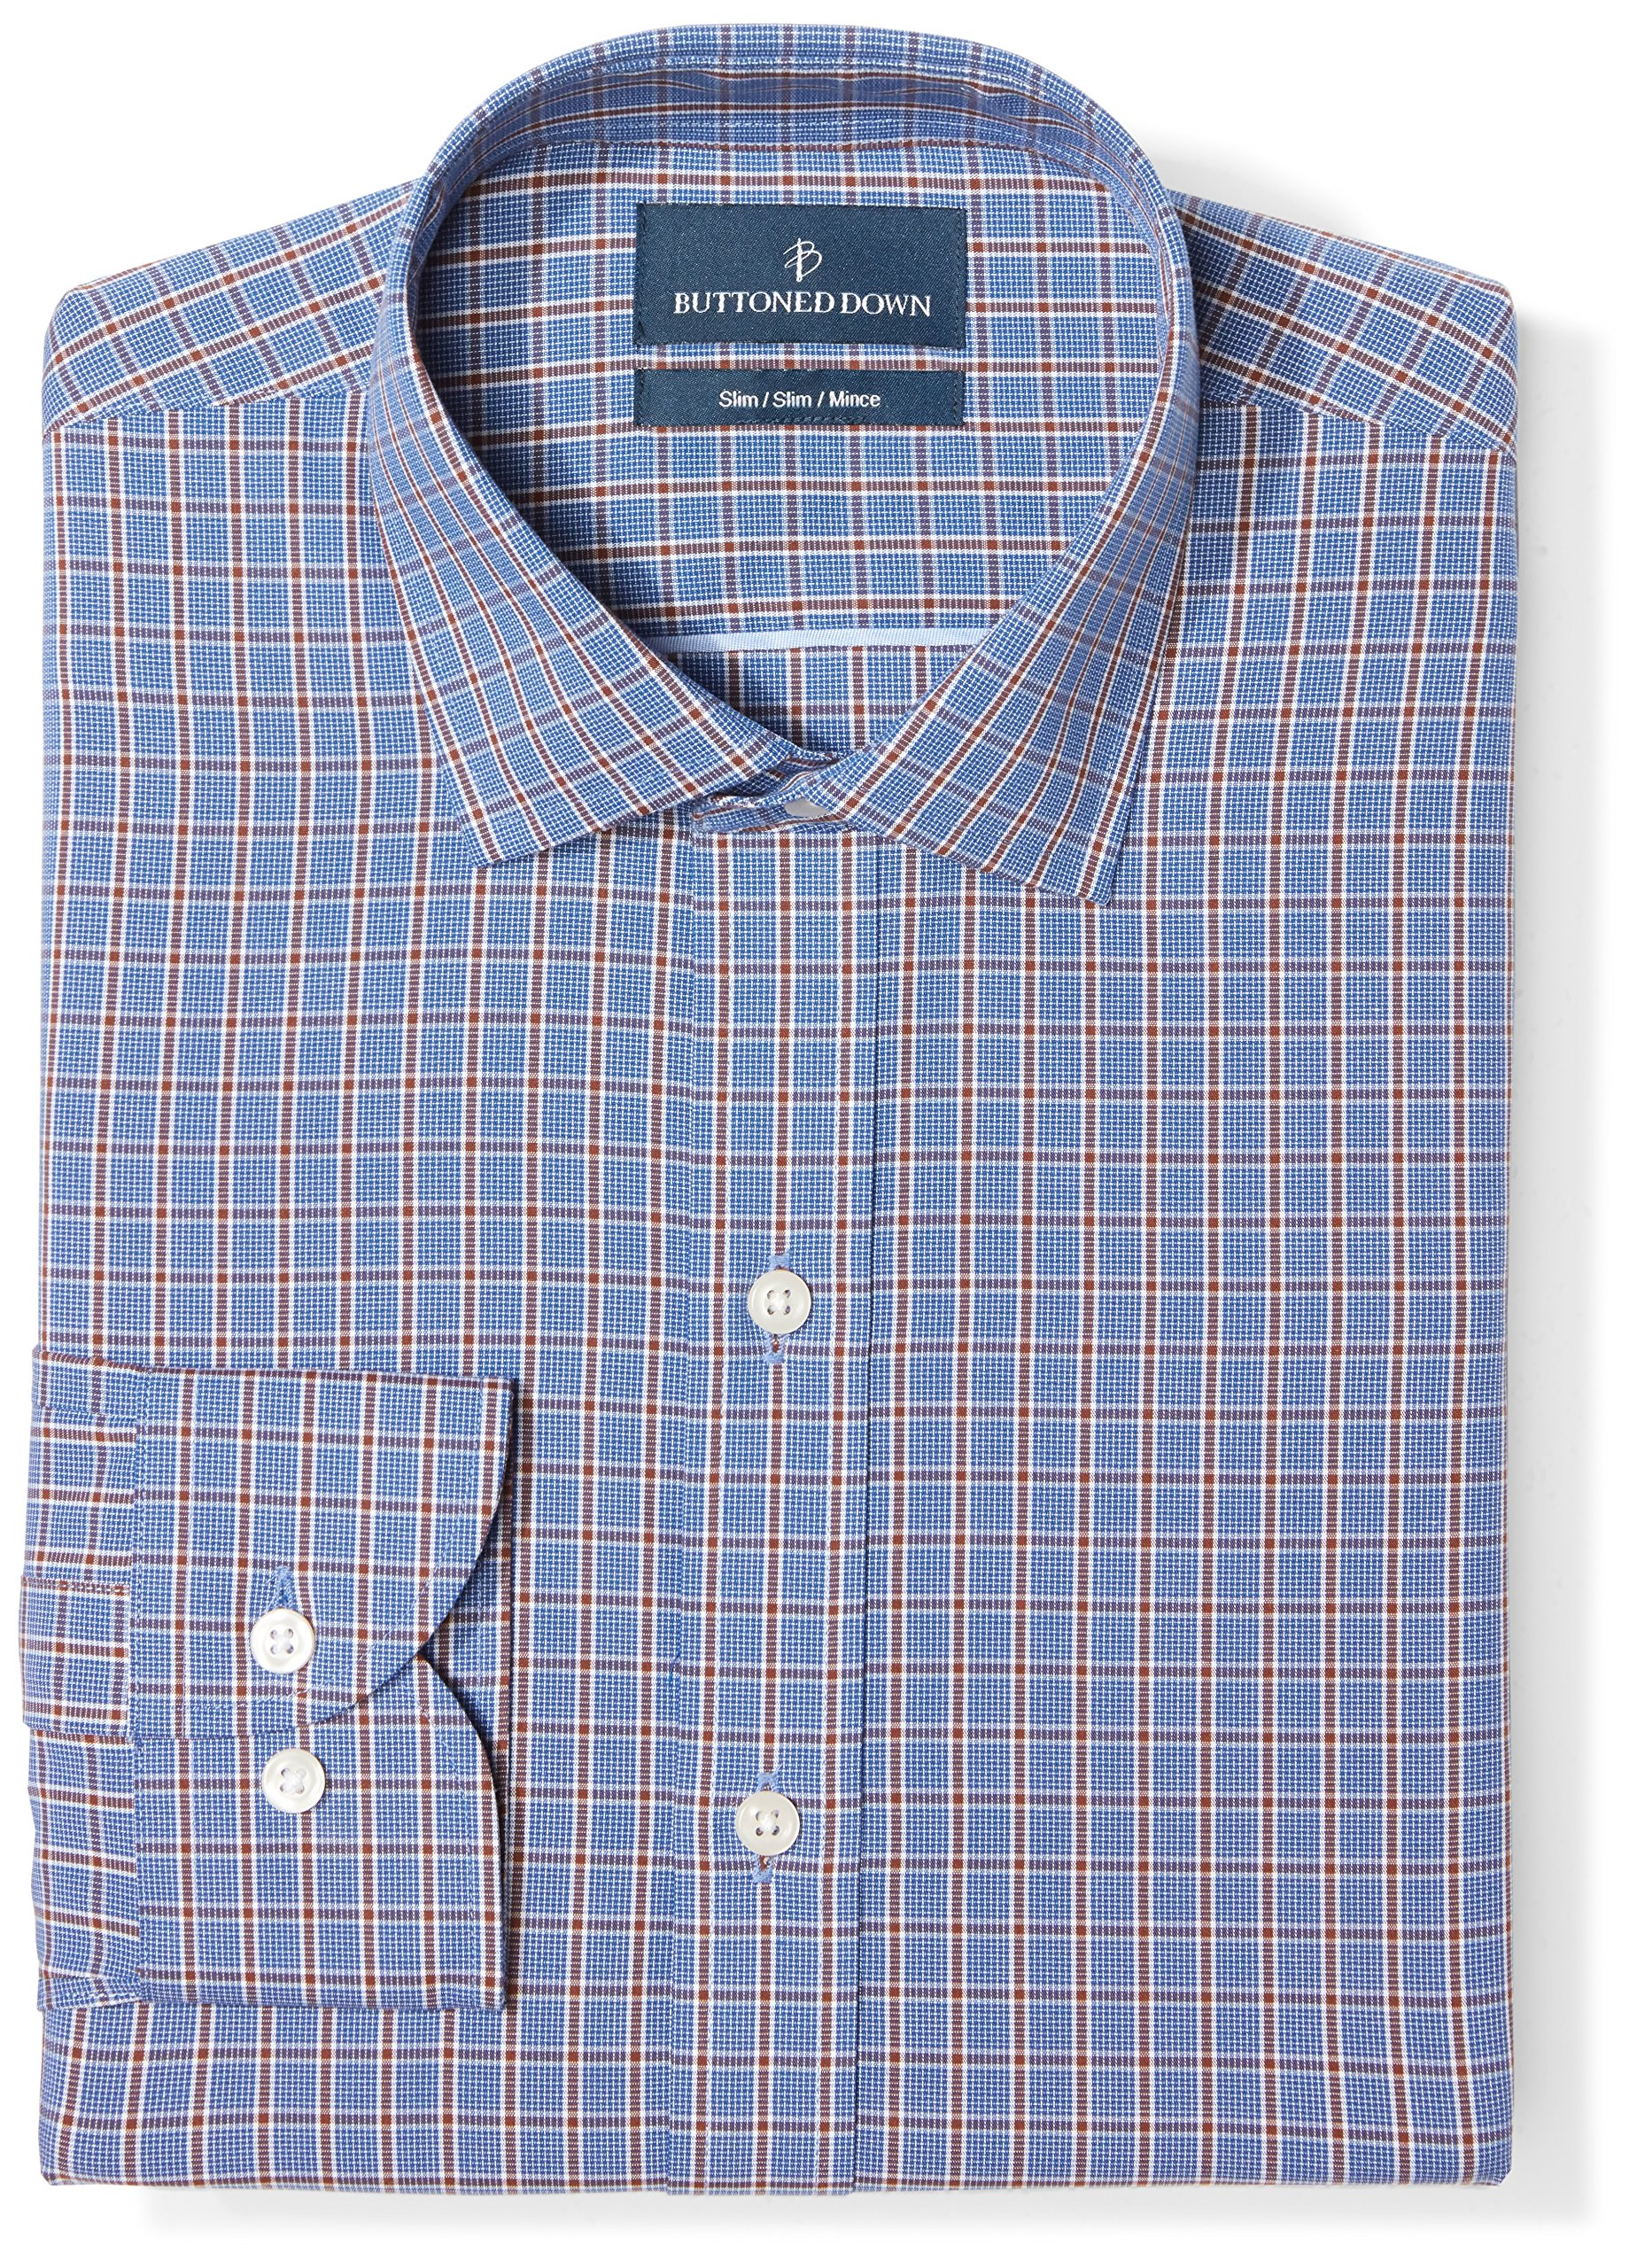 Buttoned Down Men's Slim Fit Spread Collar Pattern, Navy/Brown Plaid, 16'' Neck 35'' Sleeve